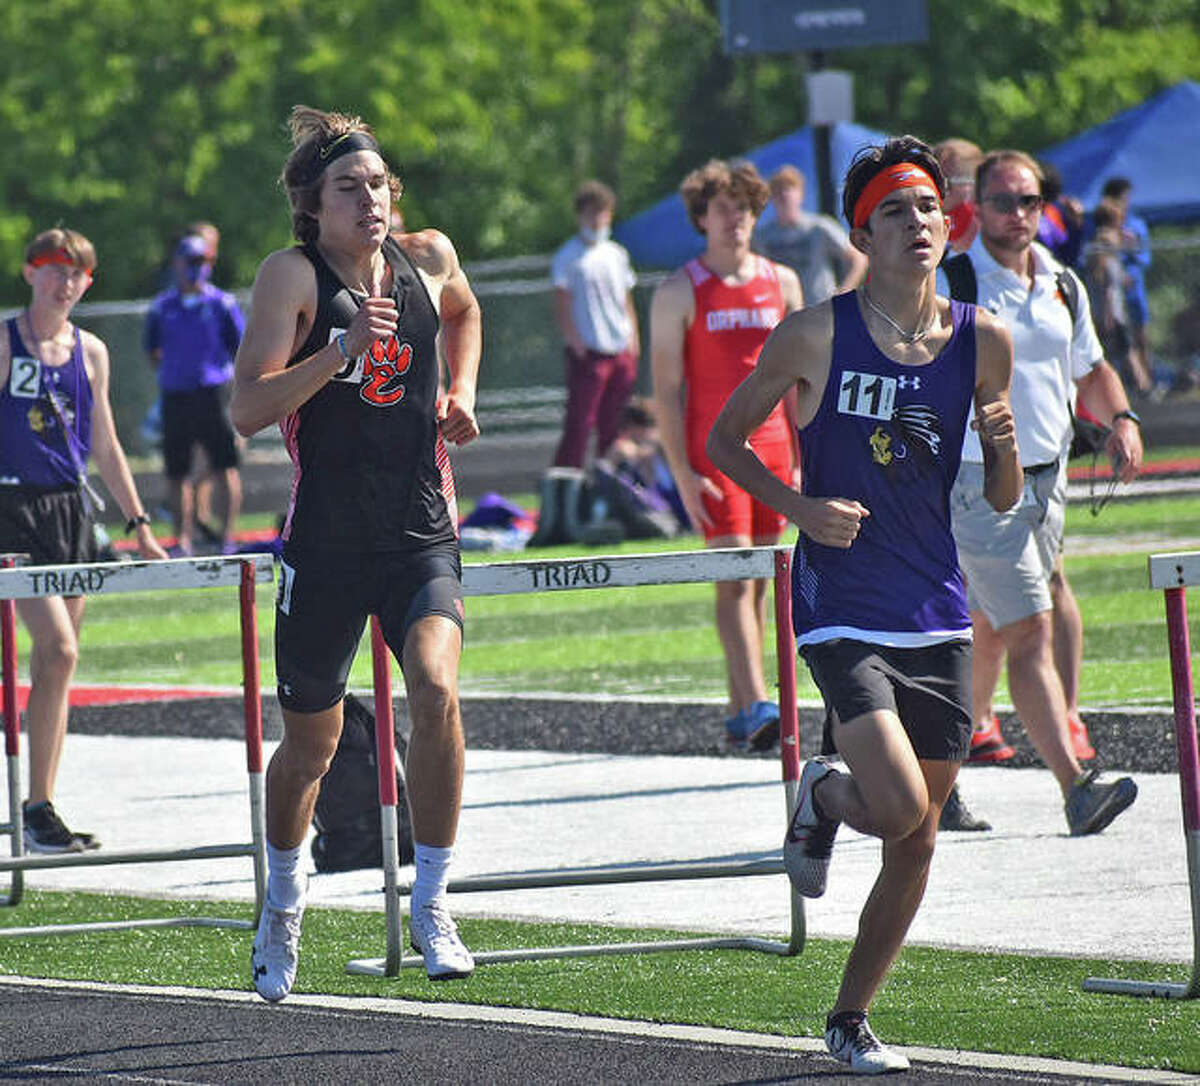 Edwardsville's Drew Law, left, competes in the 800-meter run on Friday at the Triad Invitational in Troy.